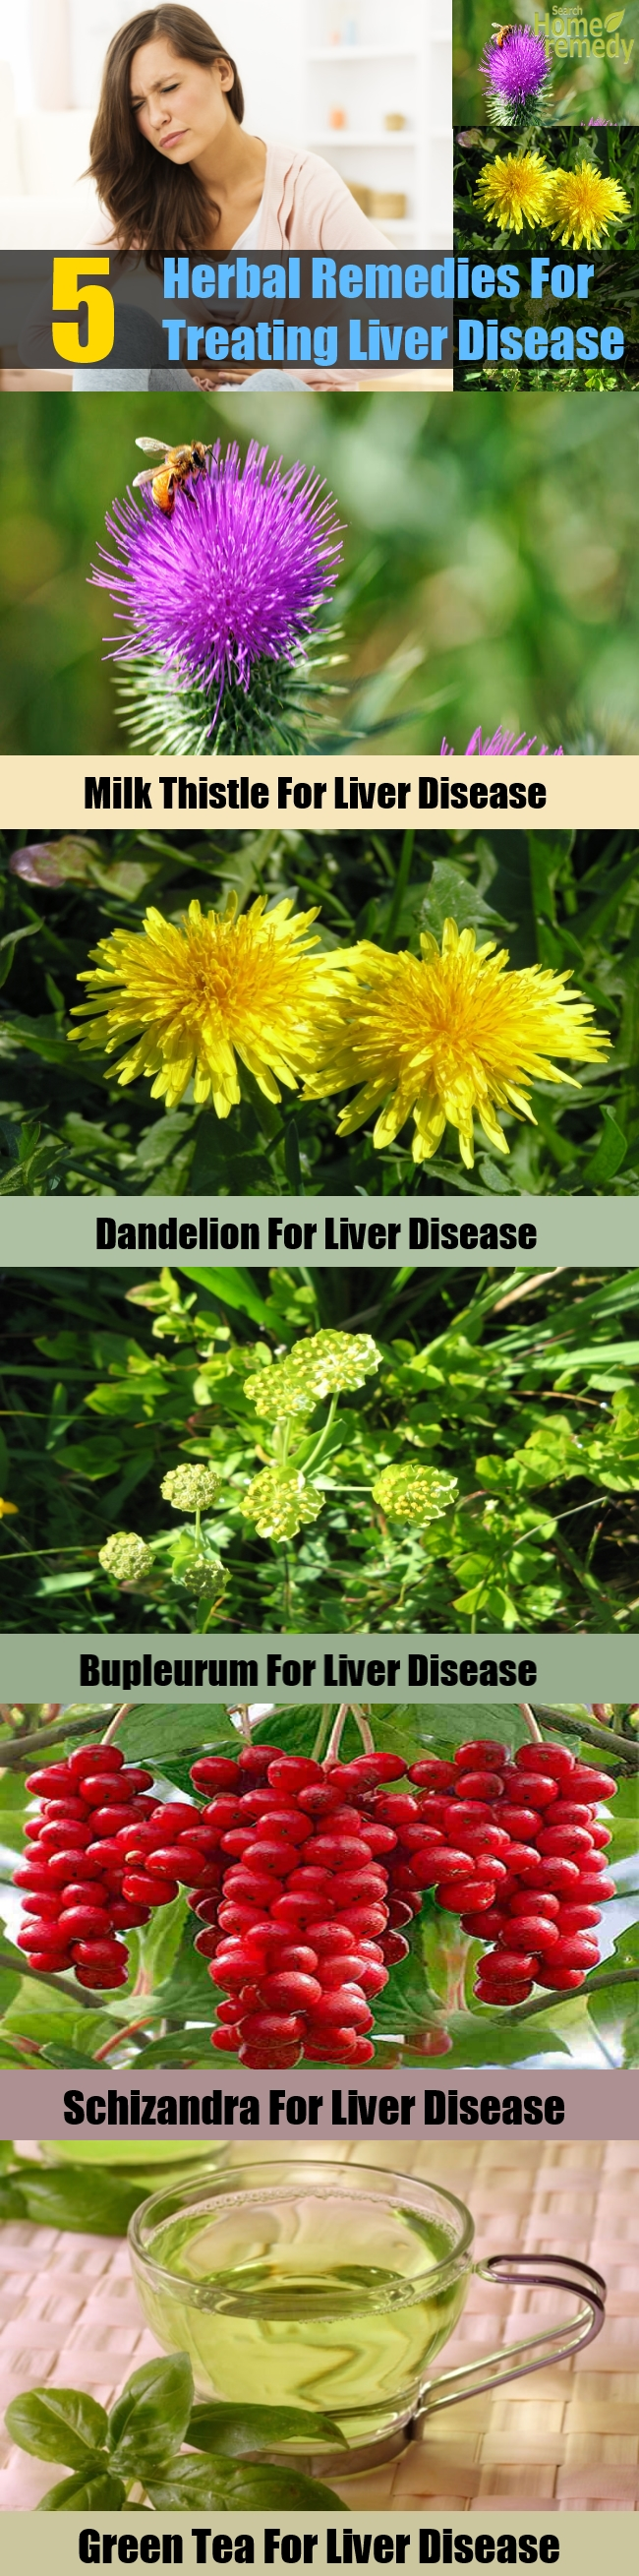 5 Effective Herbal Remedies For Treating Liver Disease